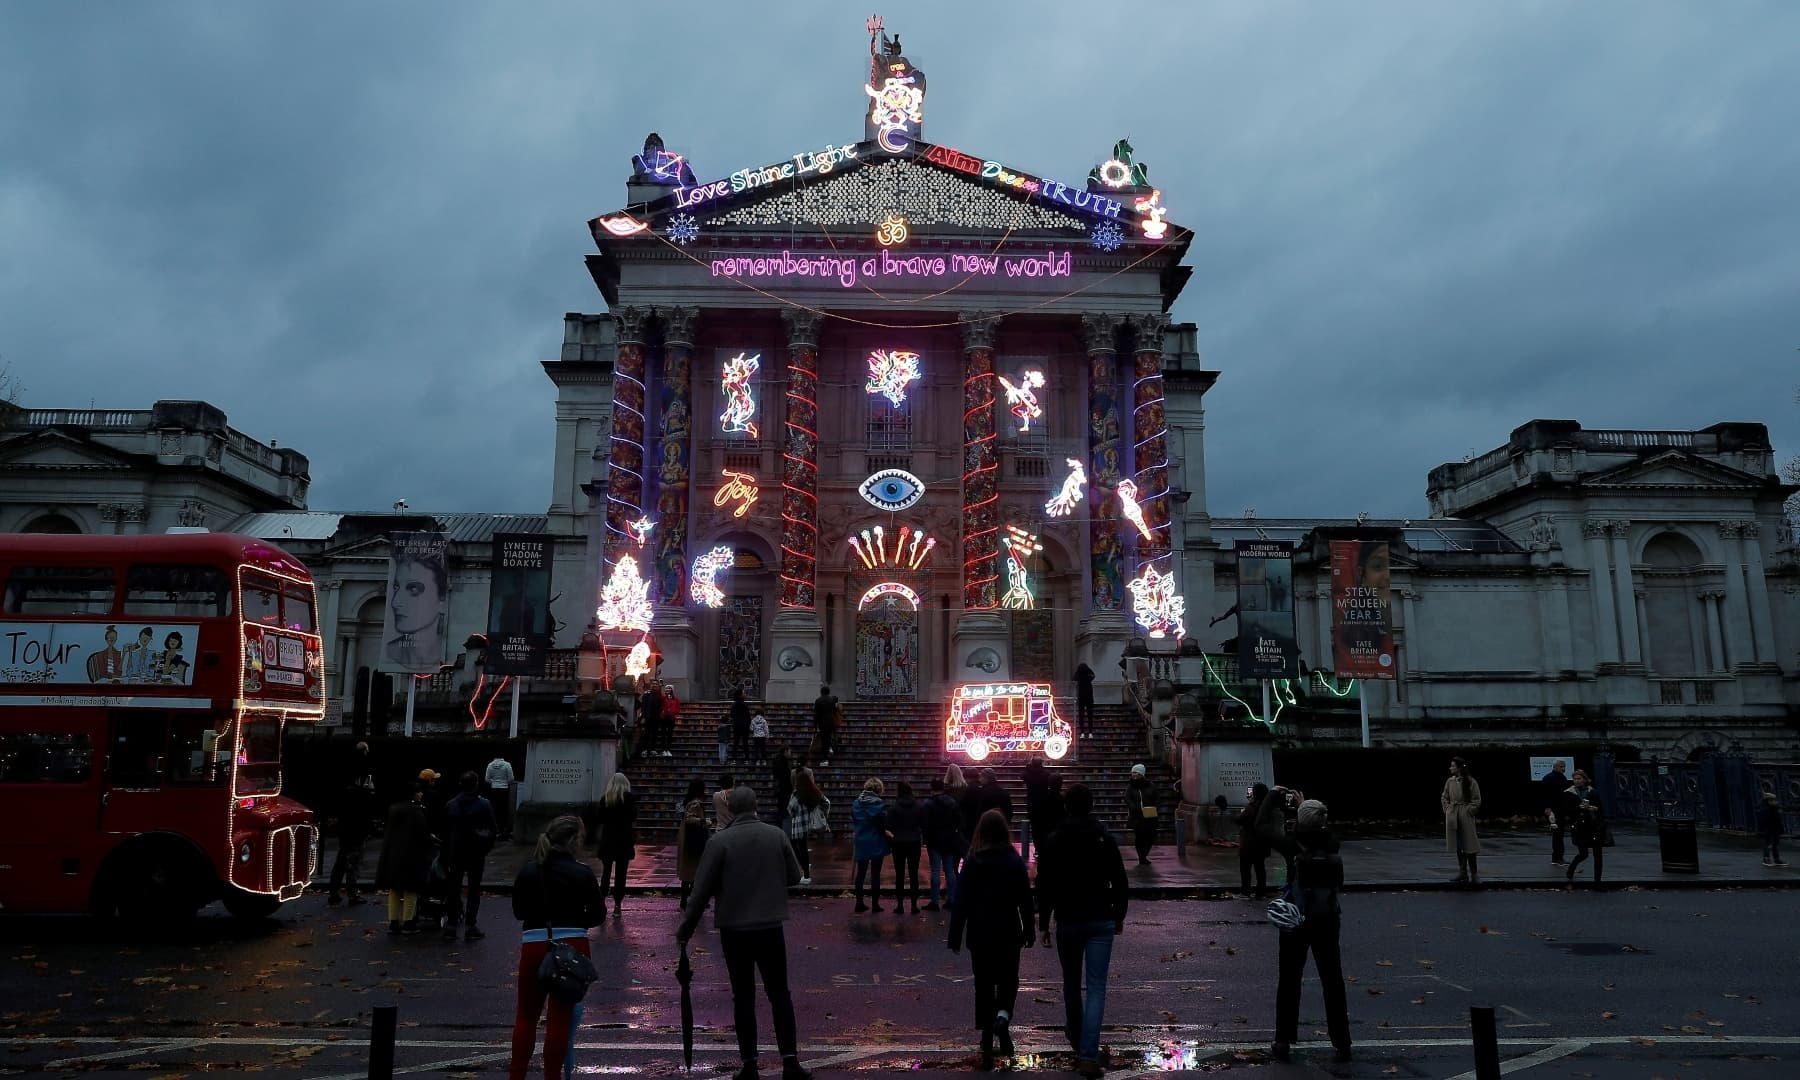 The front of the Tate Britain art gallery is illuminated with a light installation by artist Chila Kumari Burman to celebrate the festival of Diwali in London, Britain, November 14. — Reuters